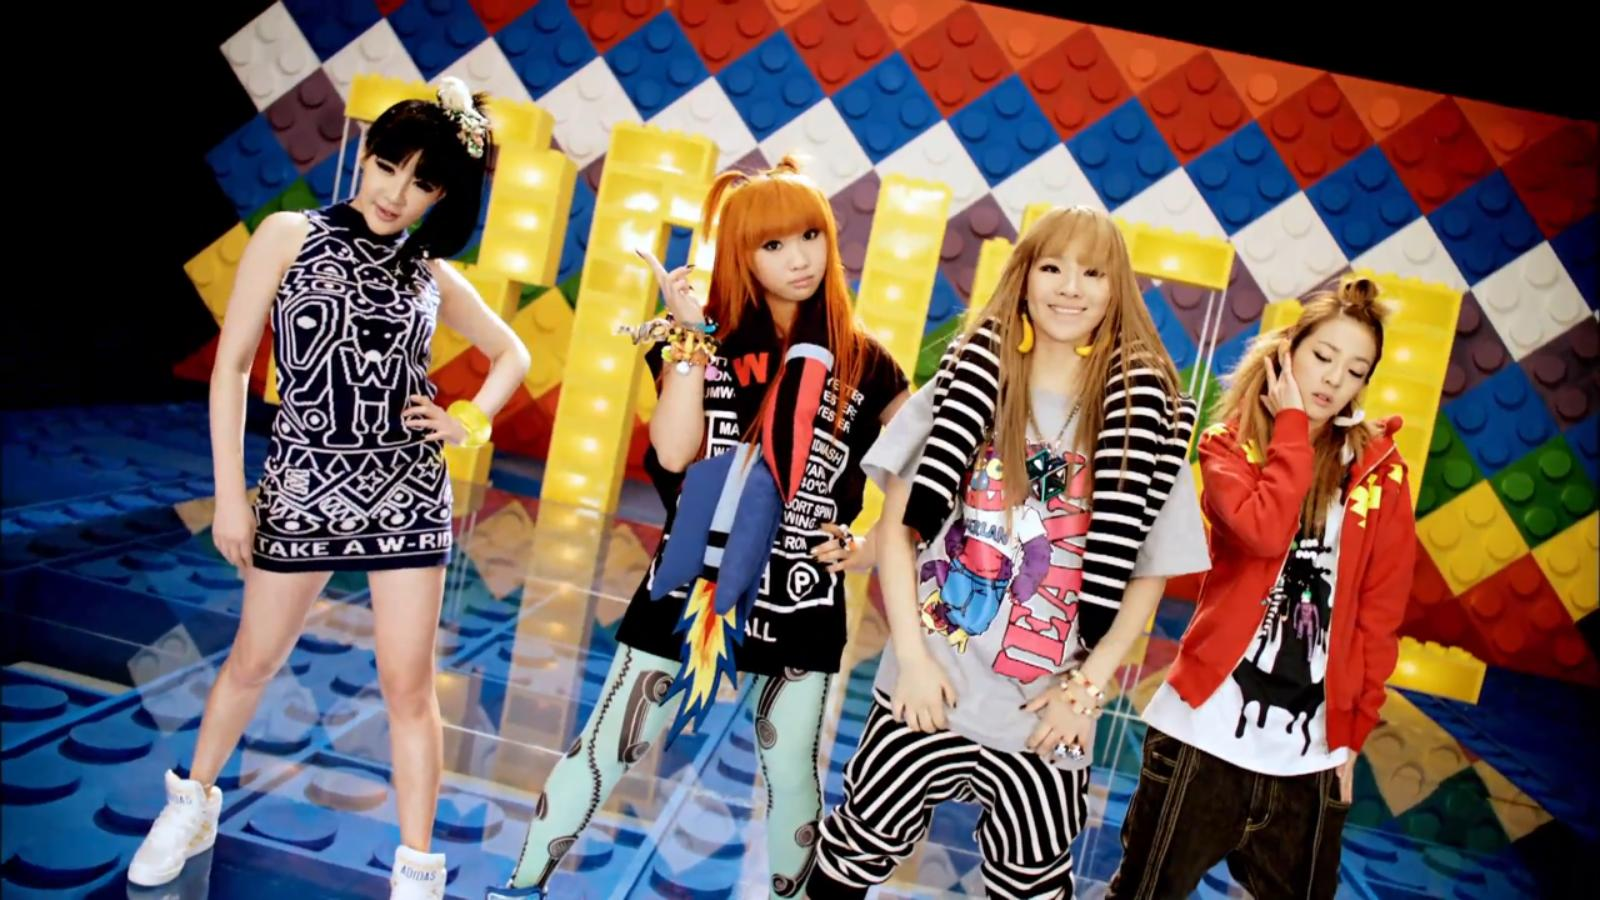 Cute Scenery Gif Wallpaper 2ne1 Hd Wallpapers Most Beautiful Places In The World